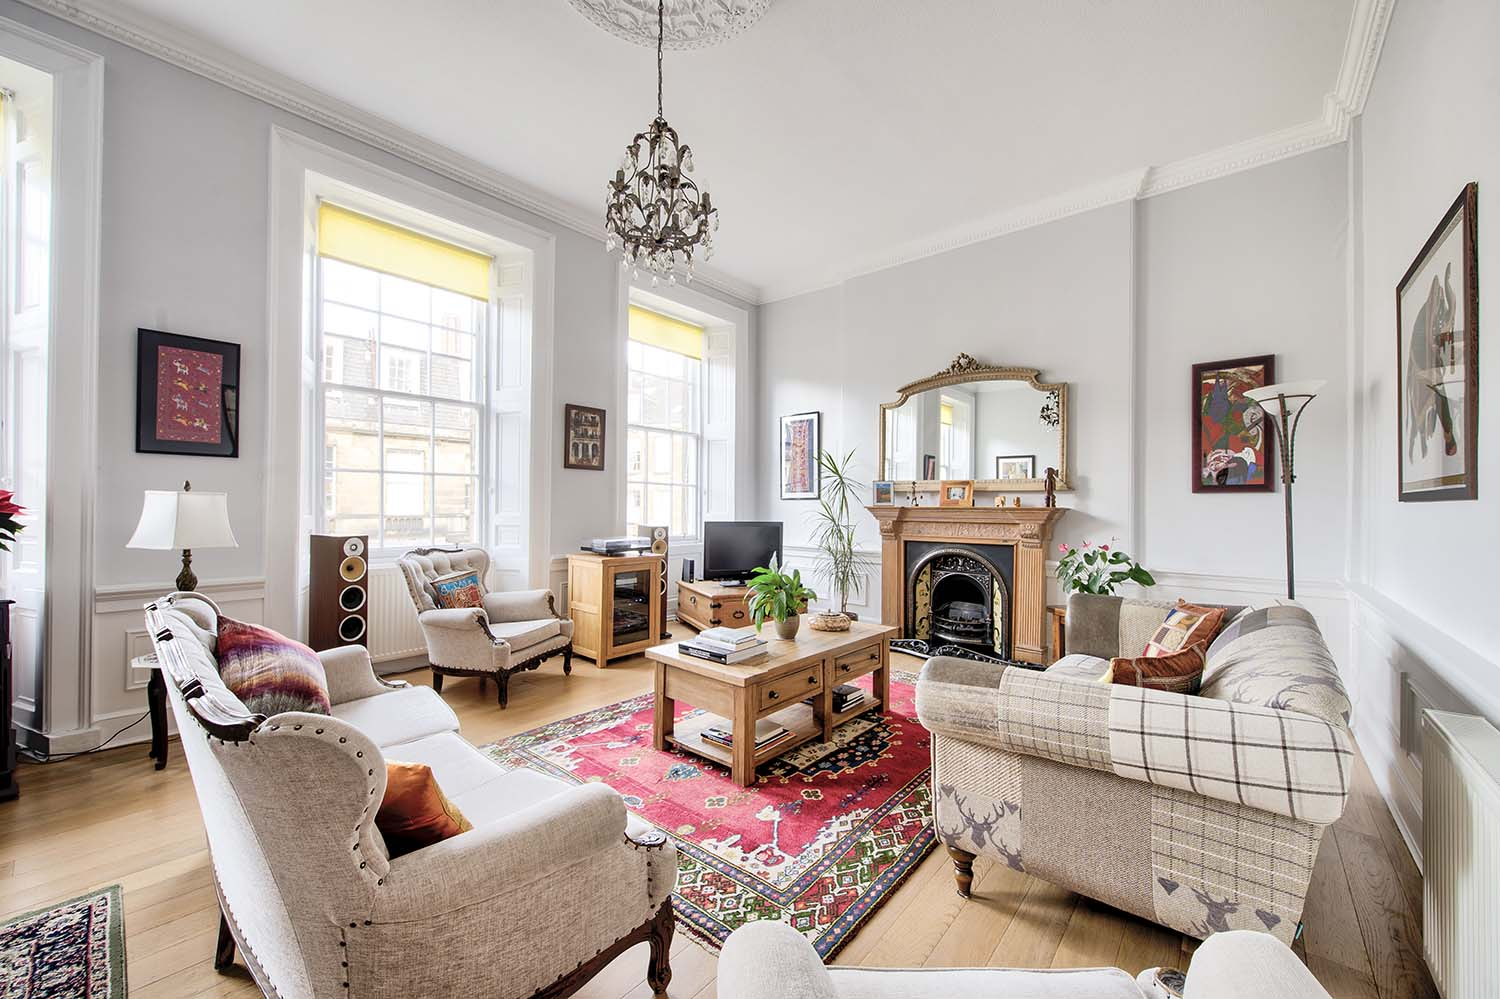 airbnb photographer edinburgh